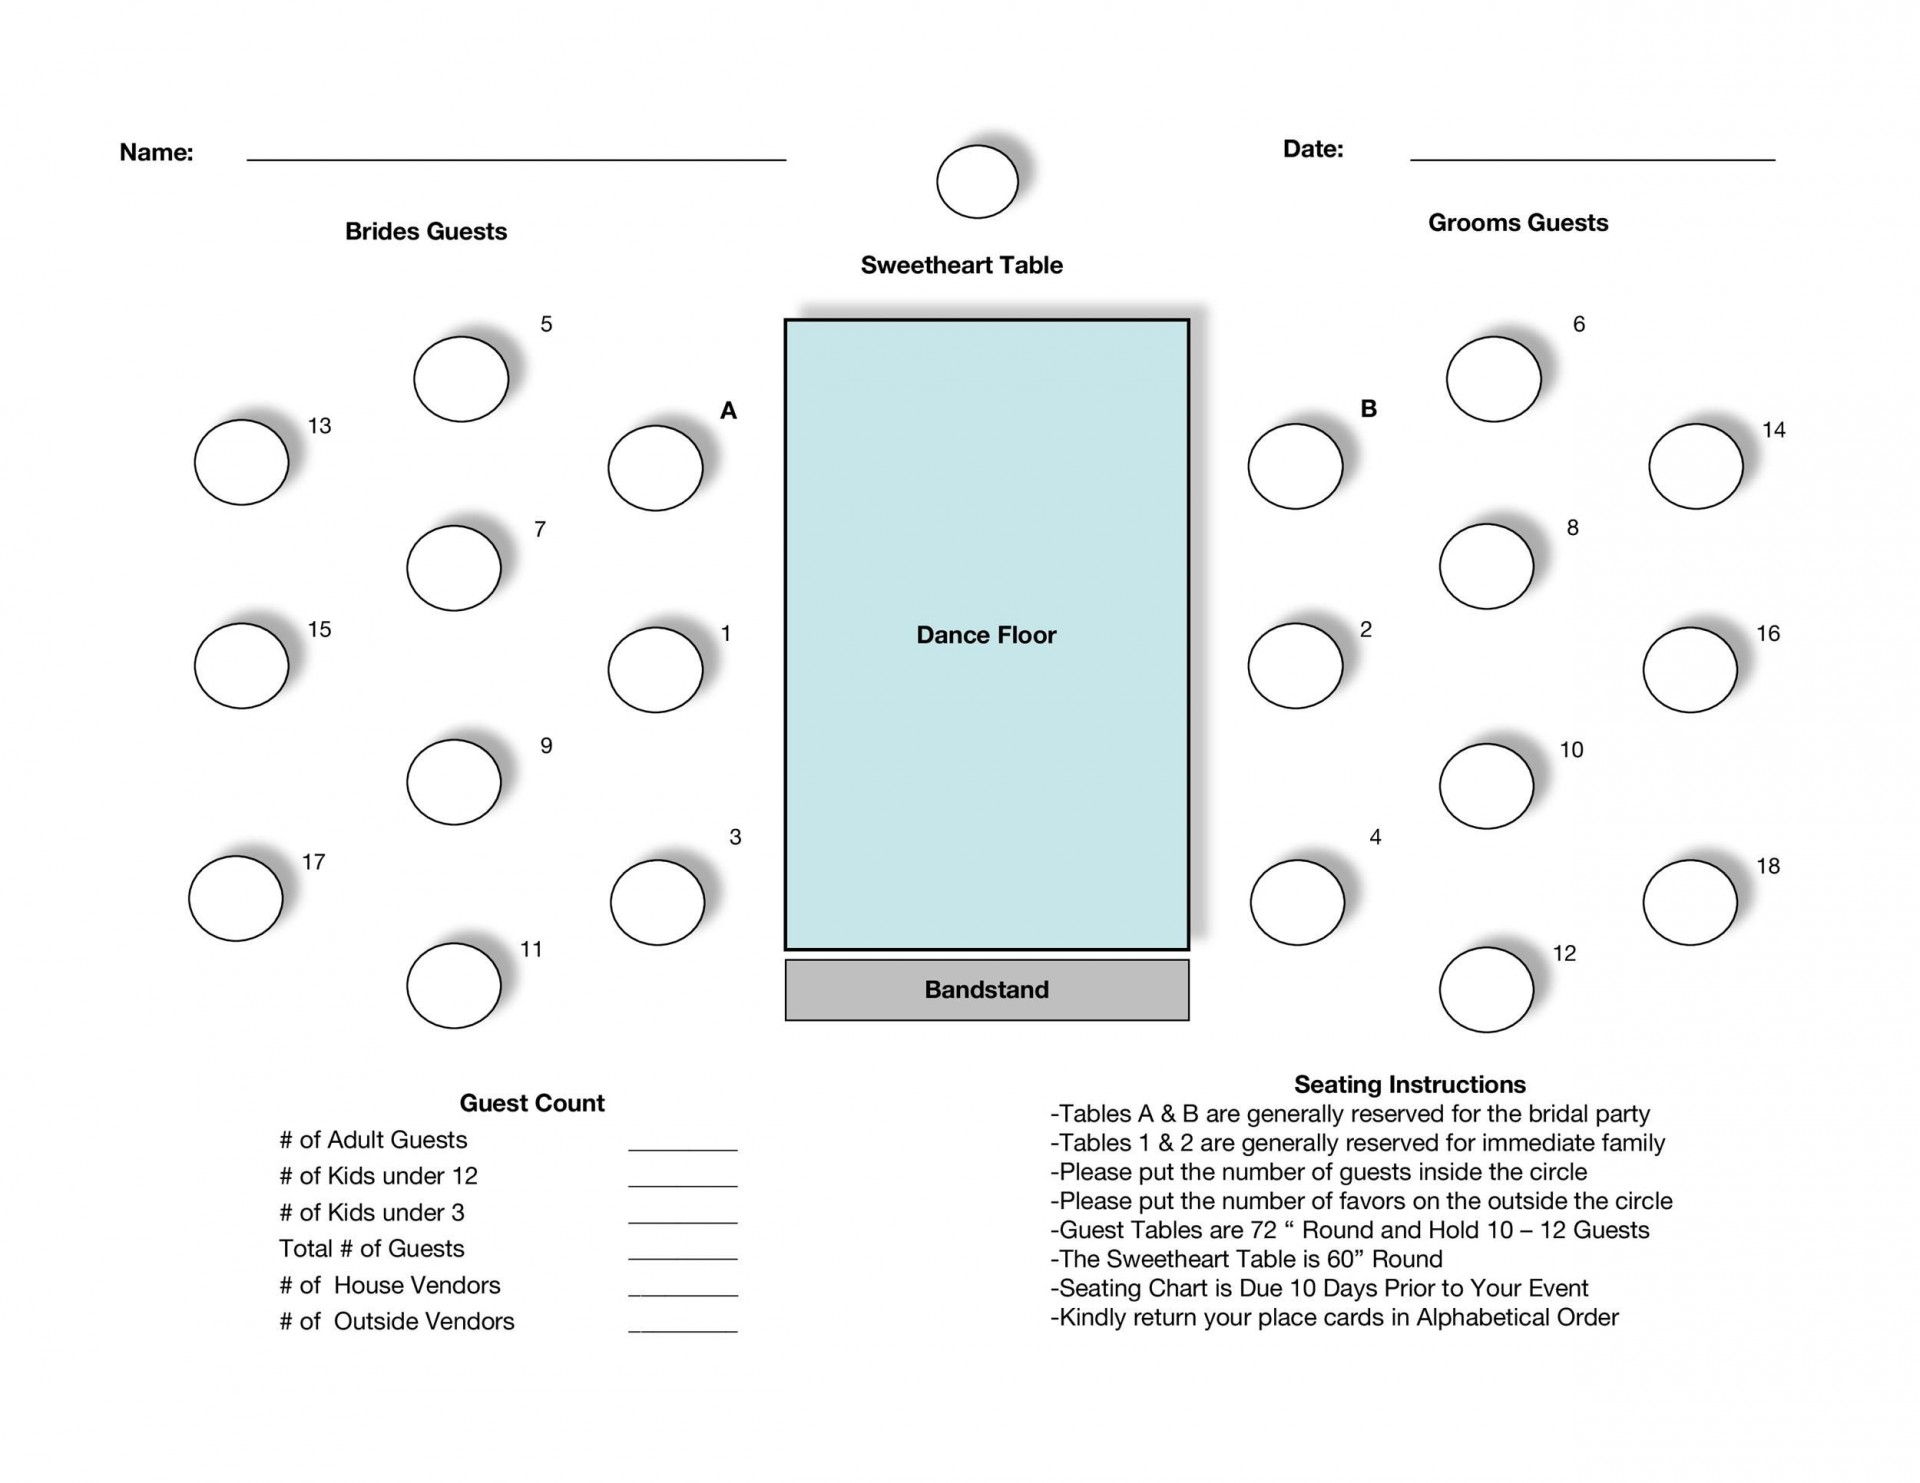 005 Fearsome Seating Chart Template Word Image  Wedding Microsoft Free 10 Per Table1920